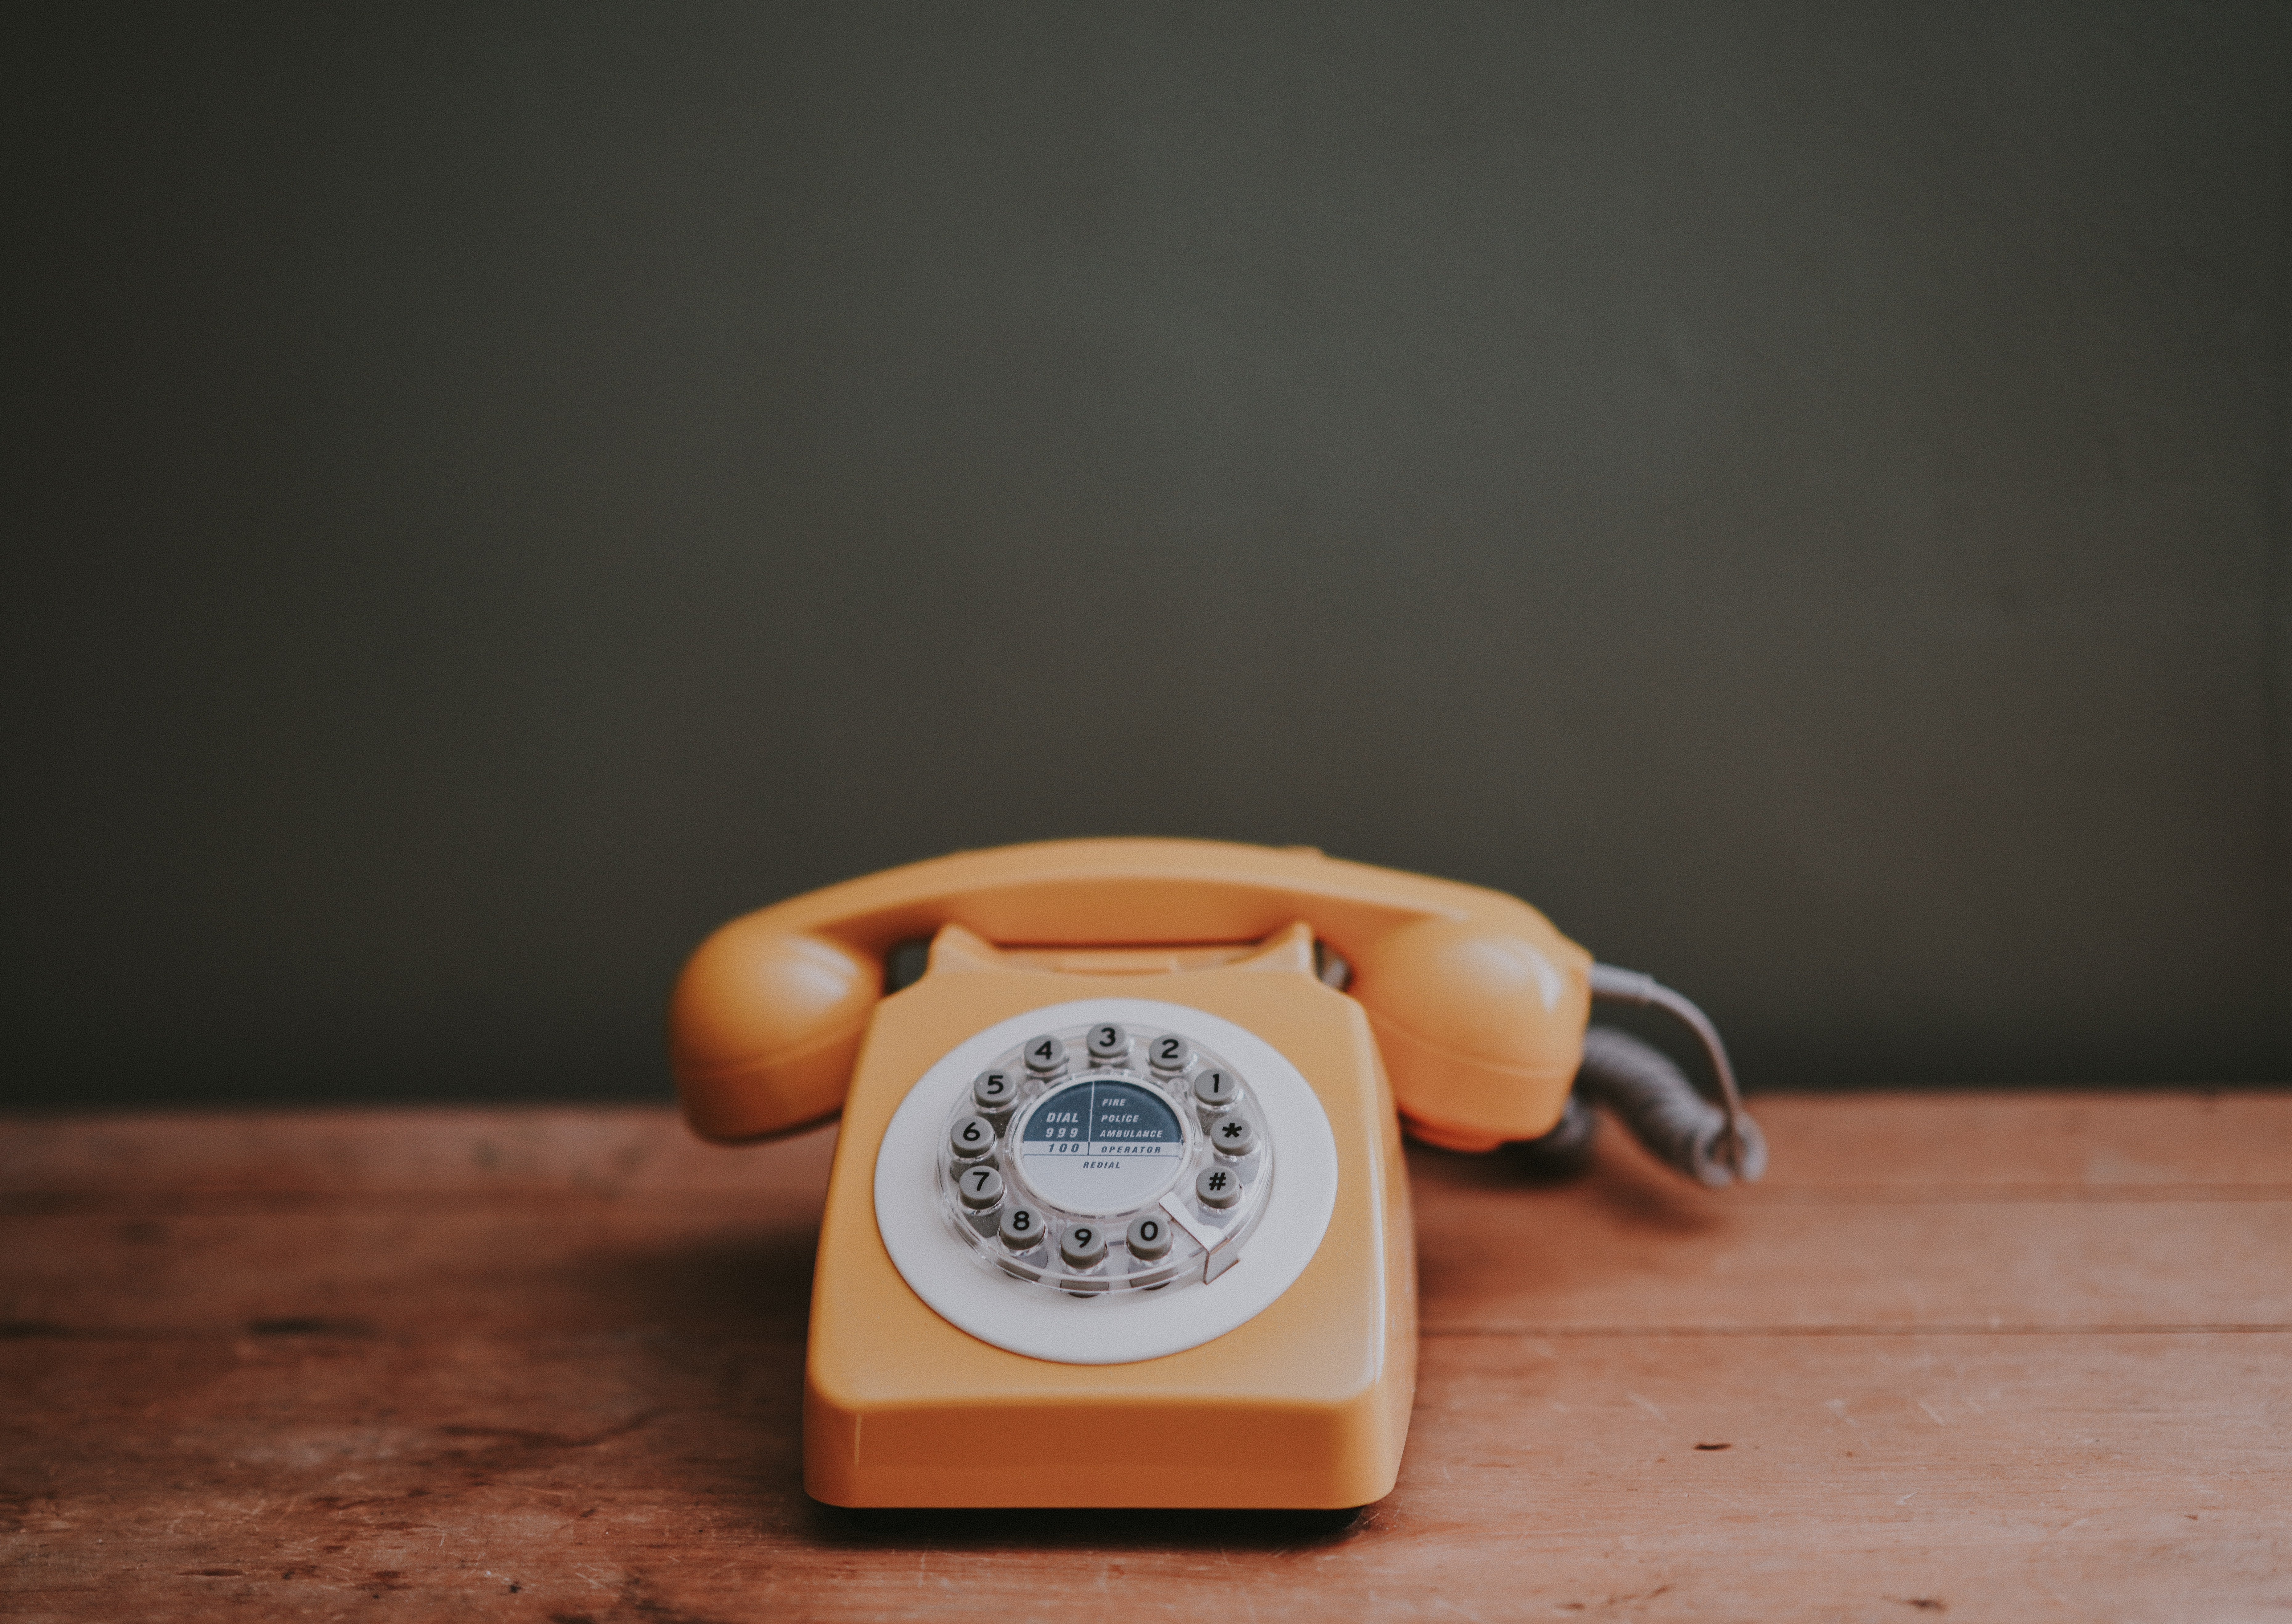 A photograph of an old-looking rotary phone